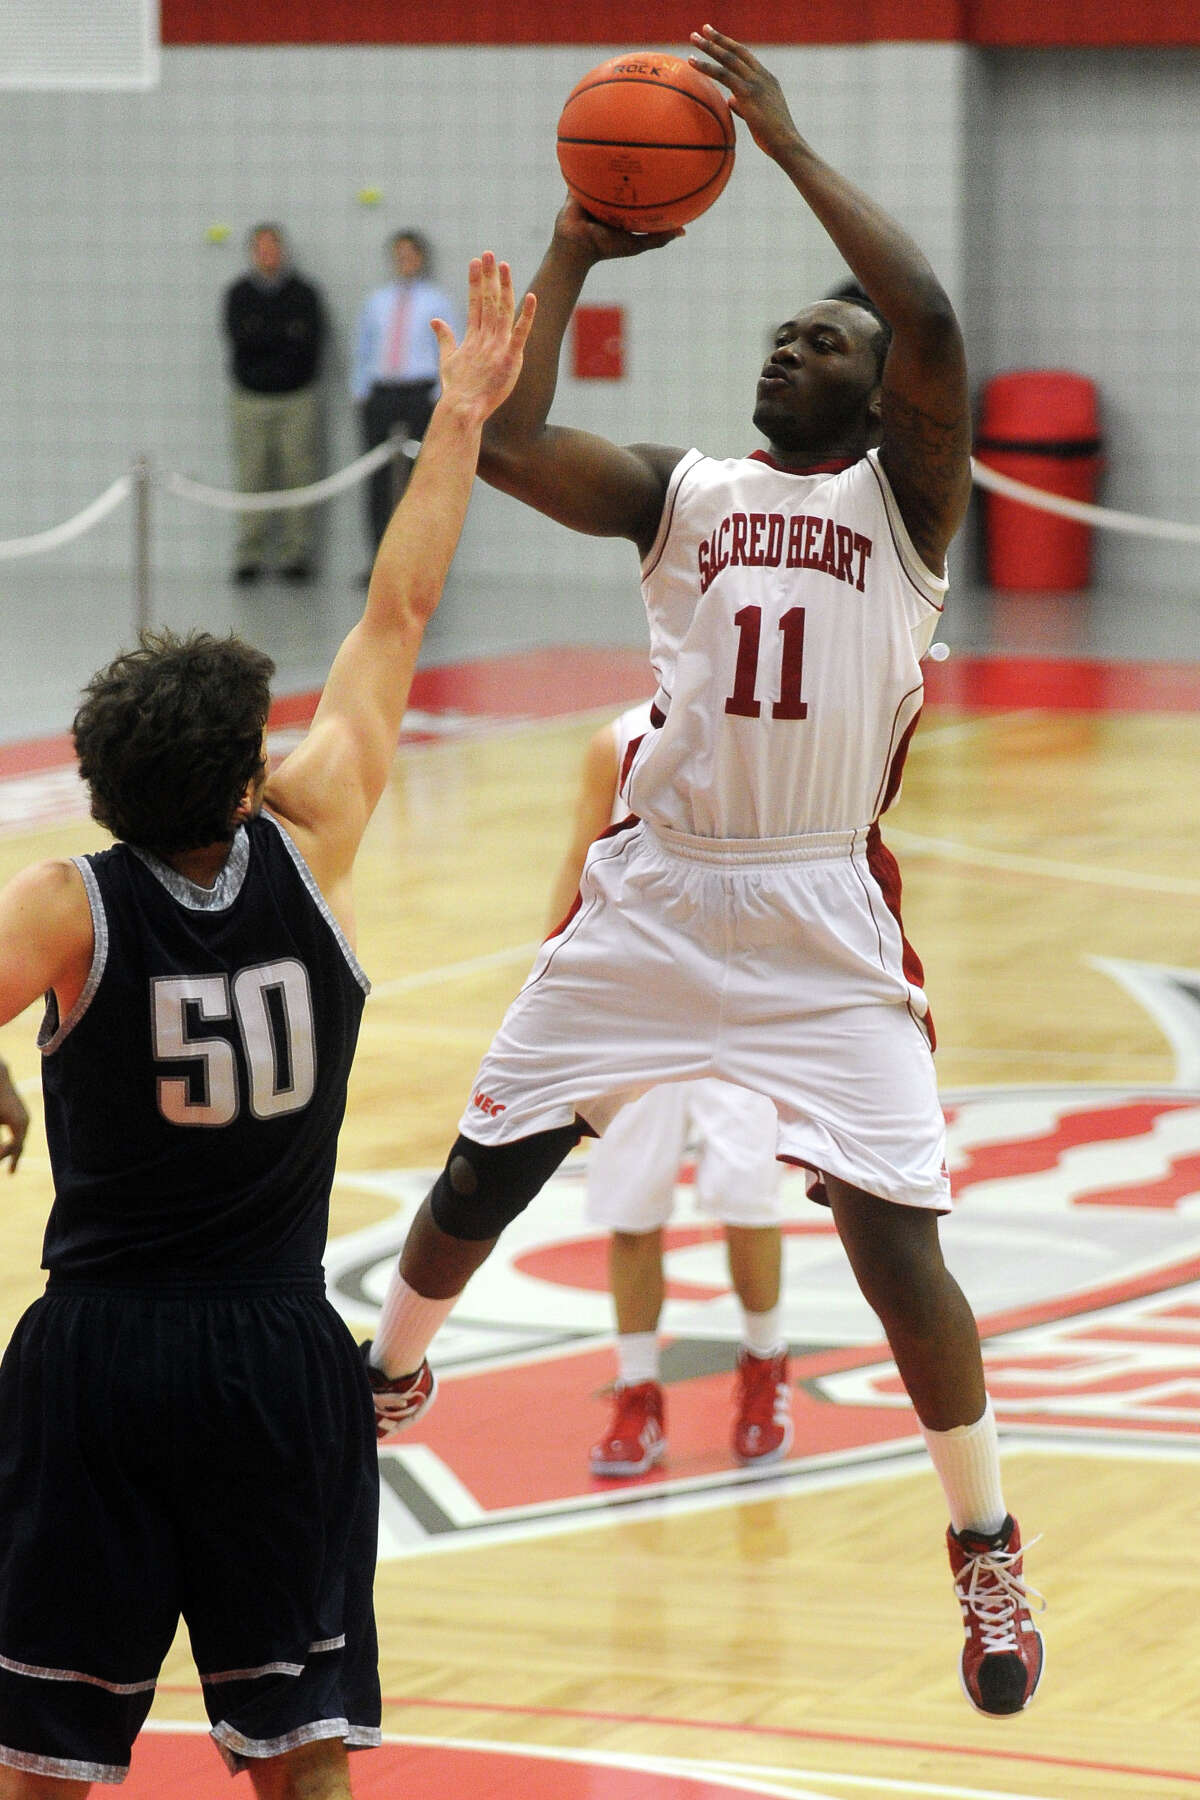 Sacred Heart's Chris Evans shoots over Yale's Jeremiah Kreisberg during basketball action at Sacred Heart University, in Fairfield, Conn. Dec. 5th, 2011. Yale defeated SHU 73-71.